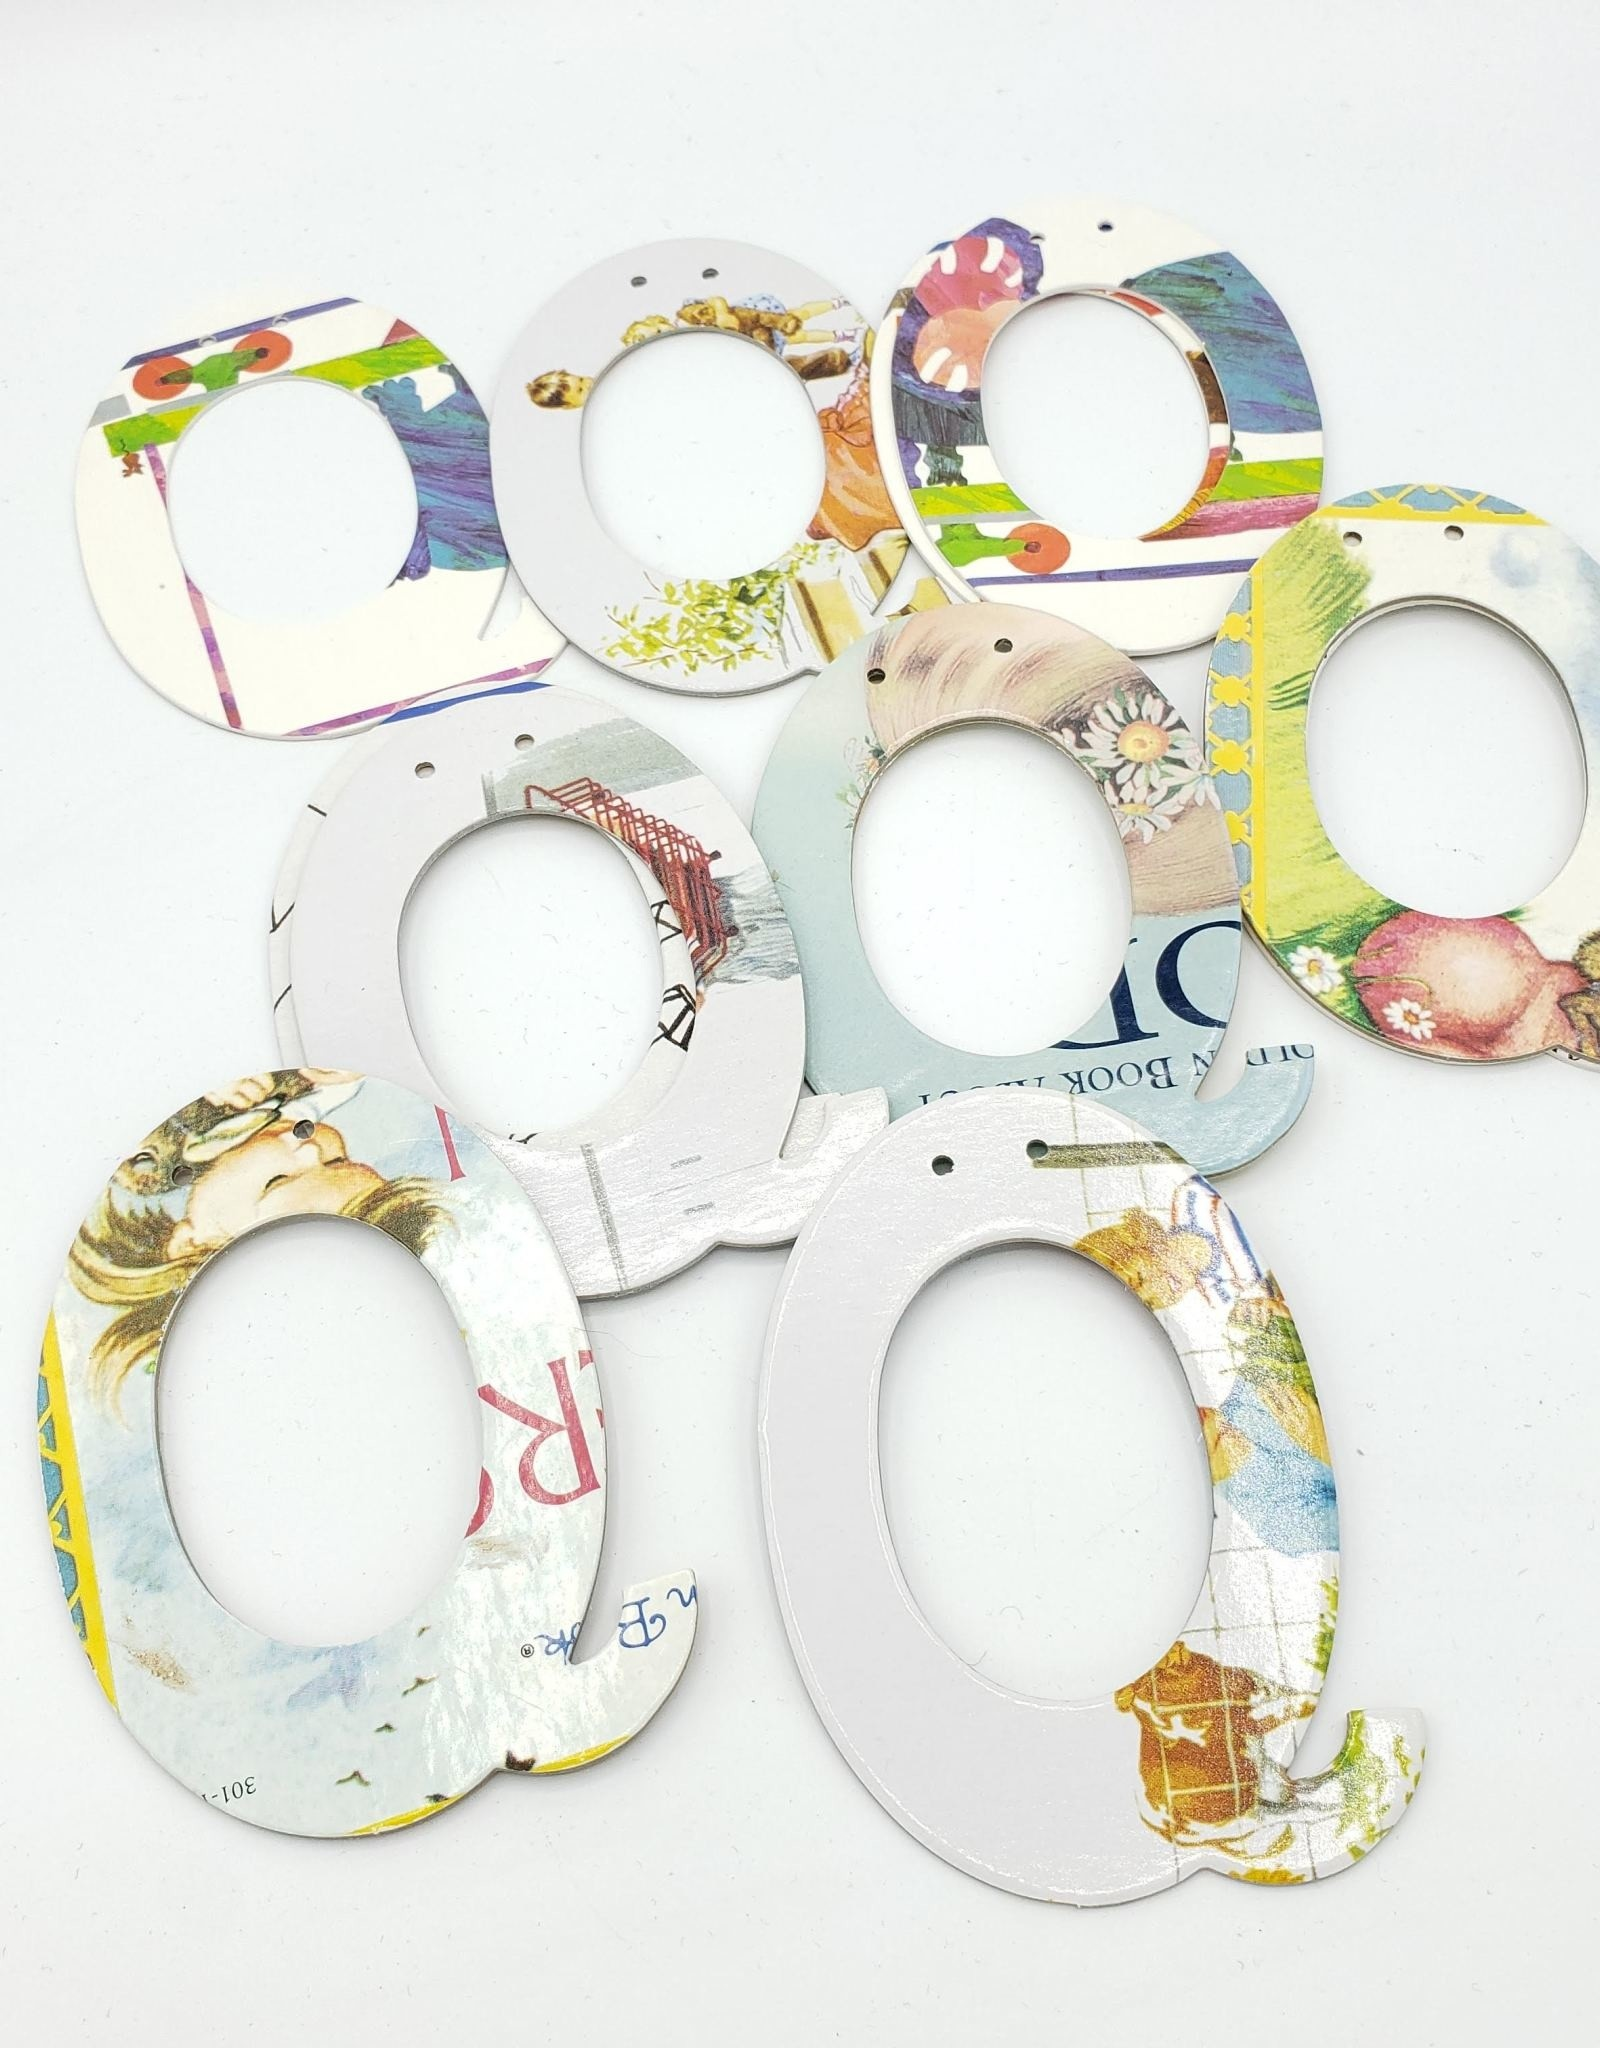 Attic Journals Garland Letters (J-R) - Recycled Books - Attic Journals